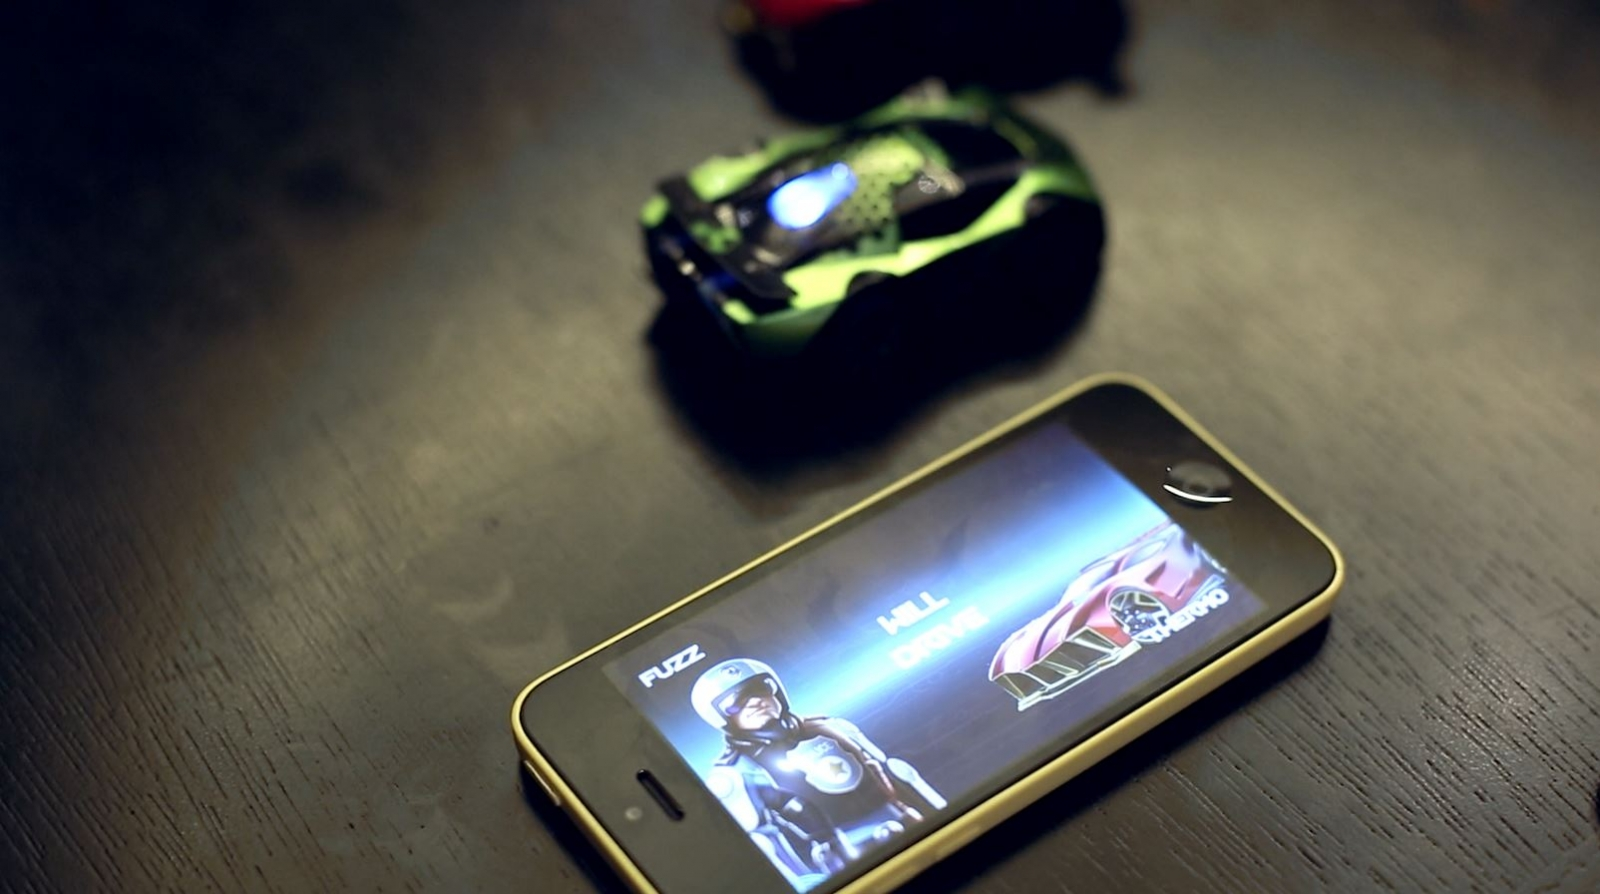 Anki Overdrive Toys Of The Future And Building A Real